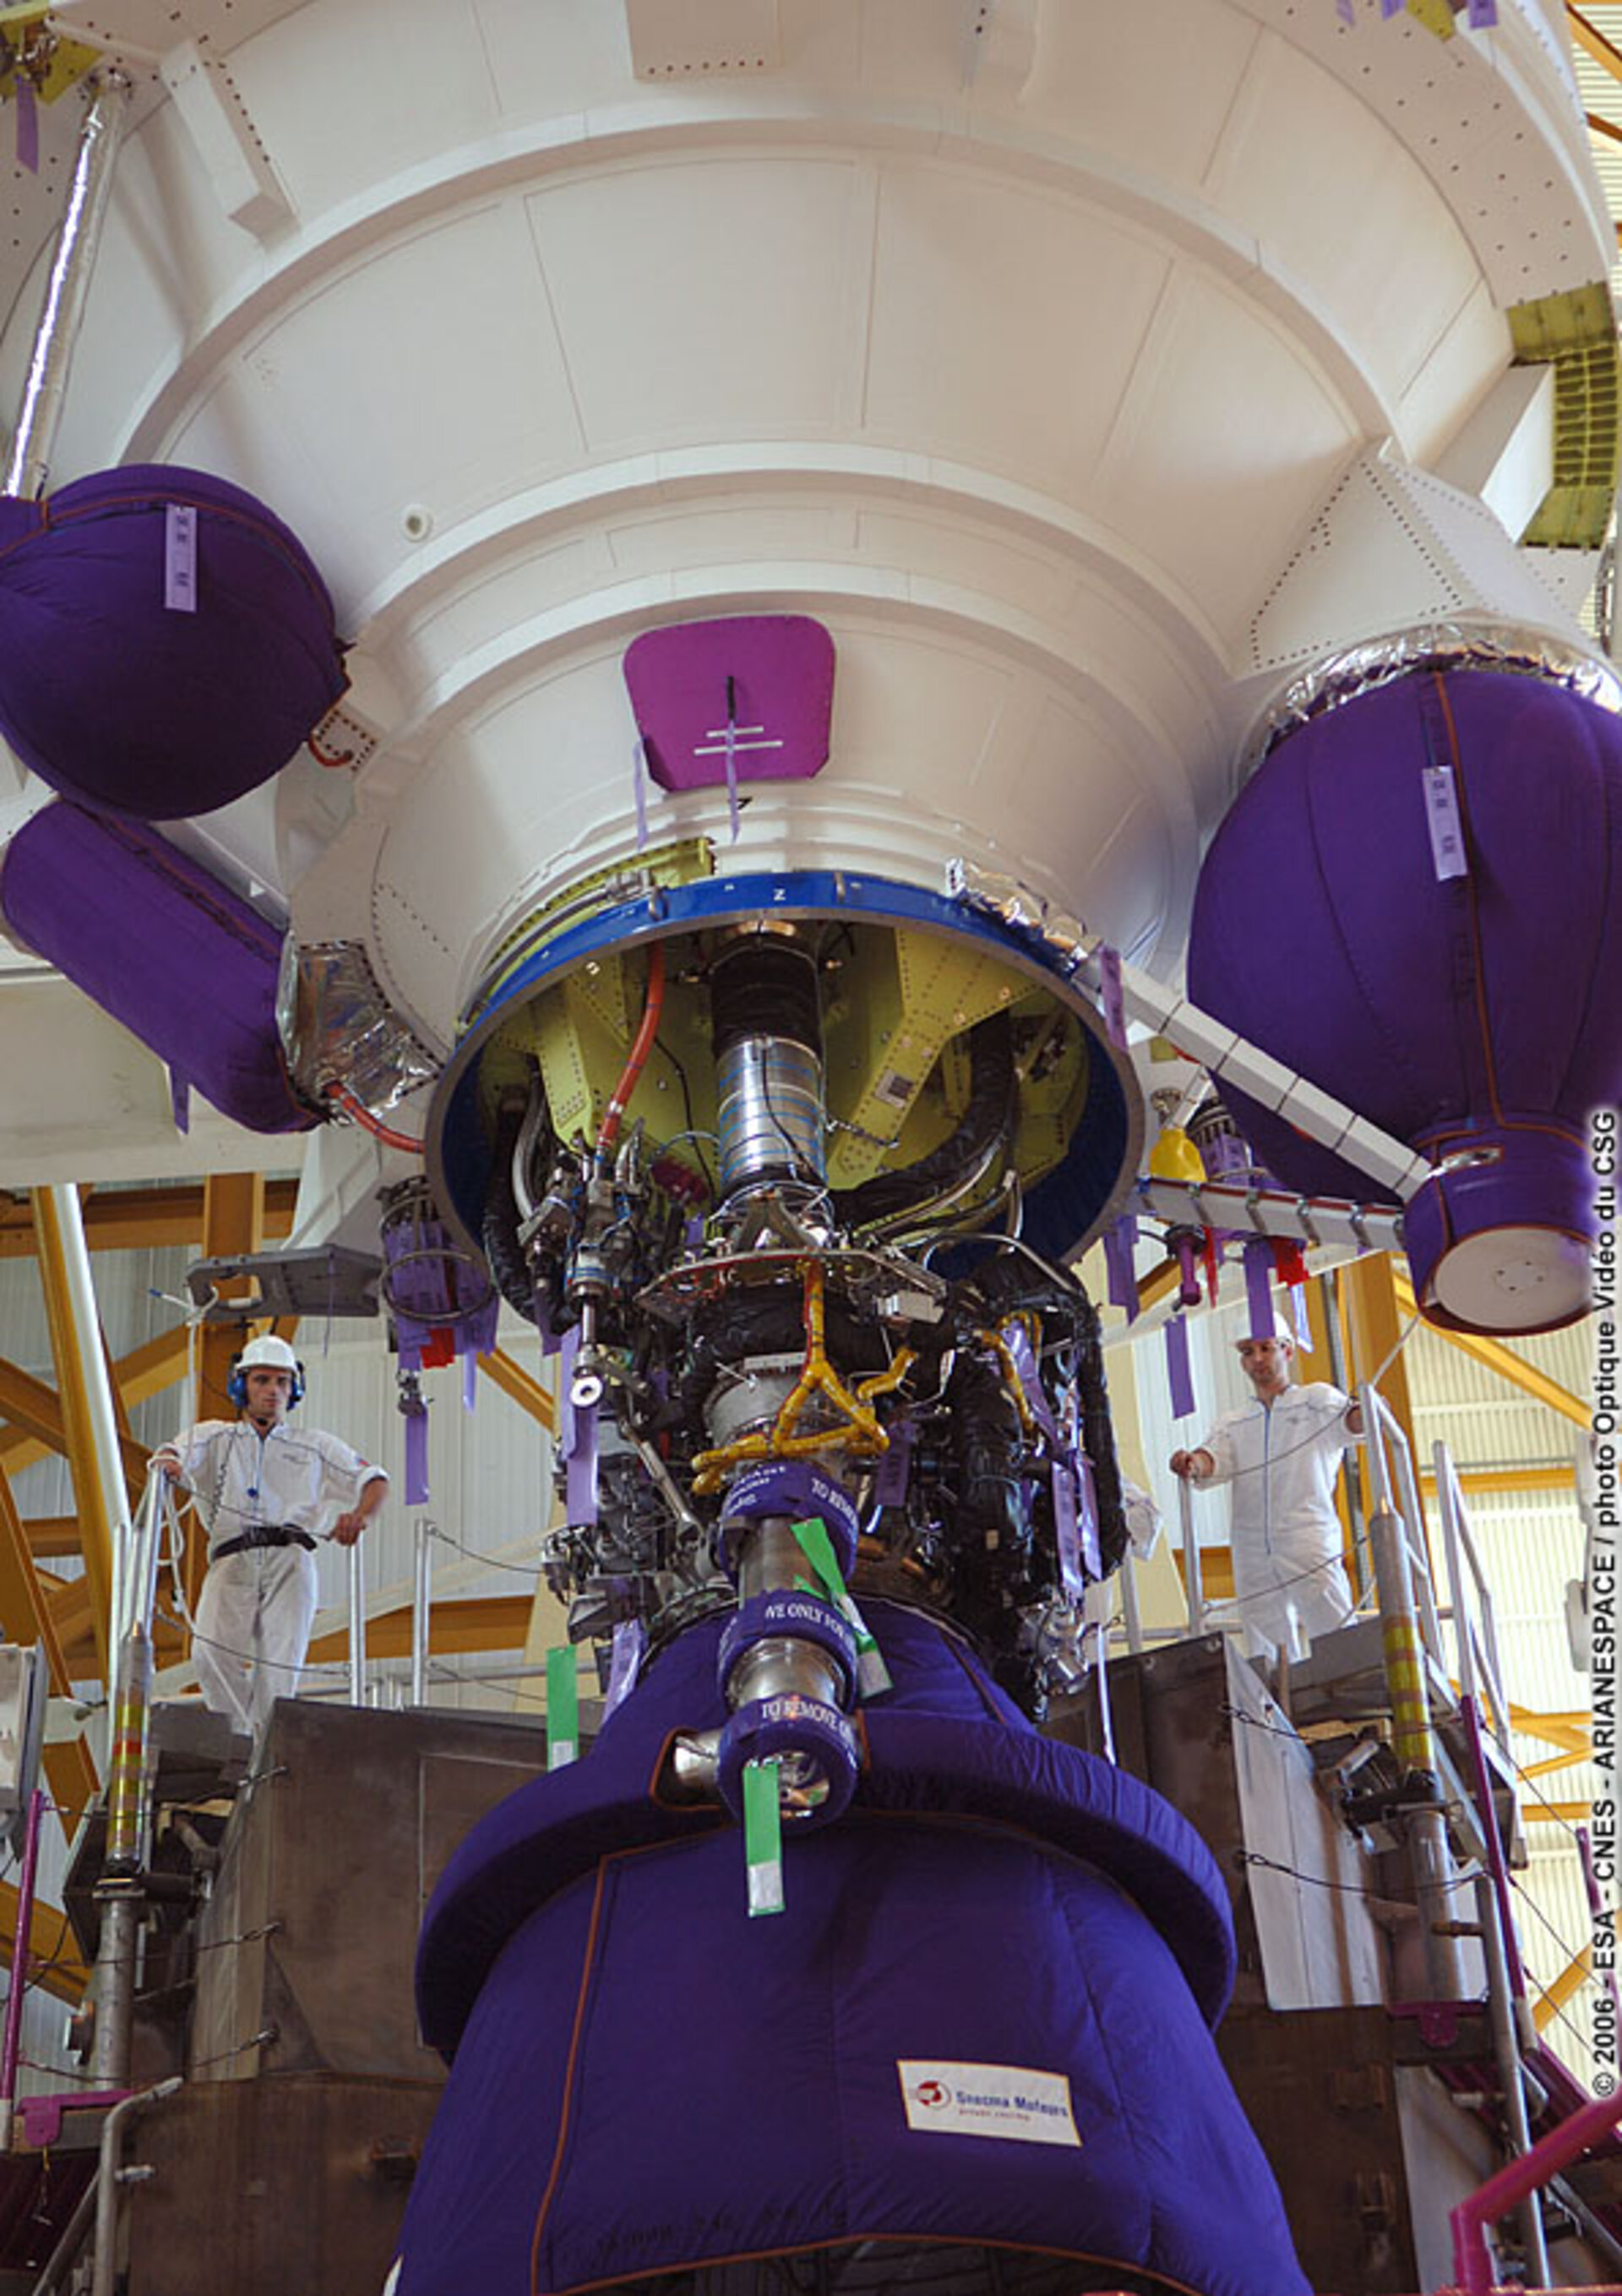 Ariane 5 main stage ready for mating